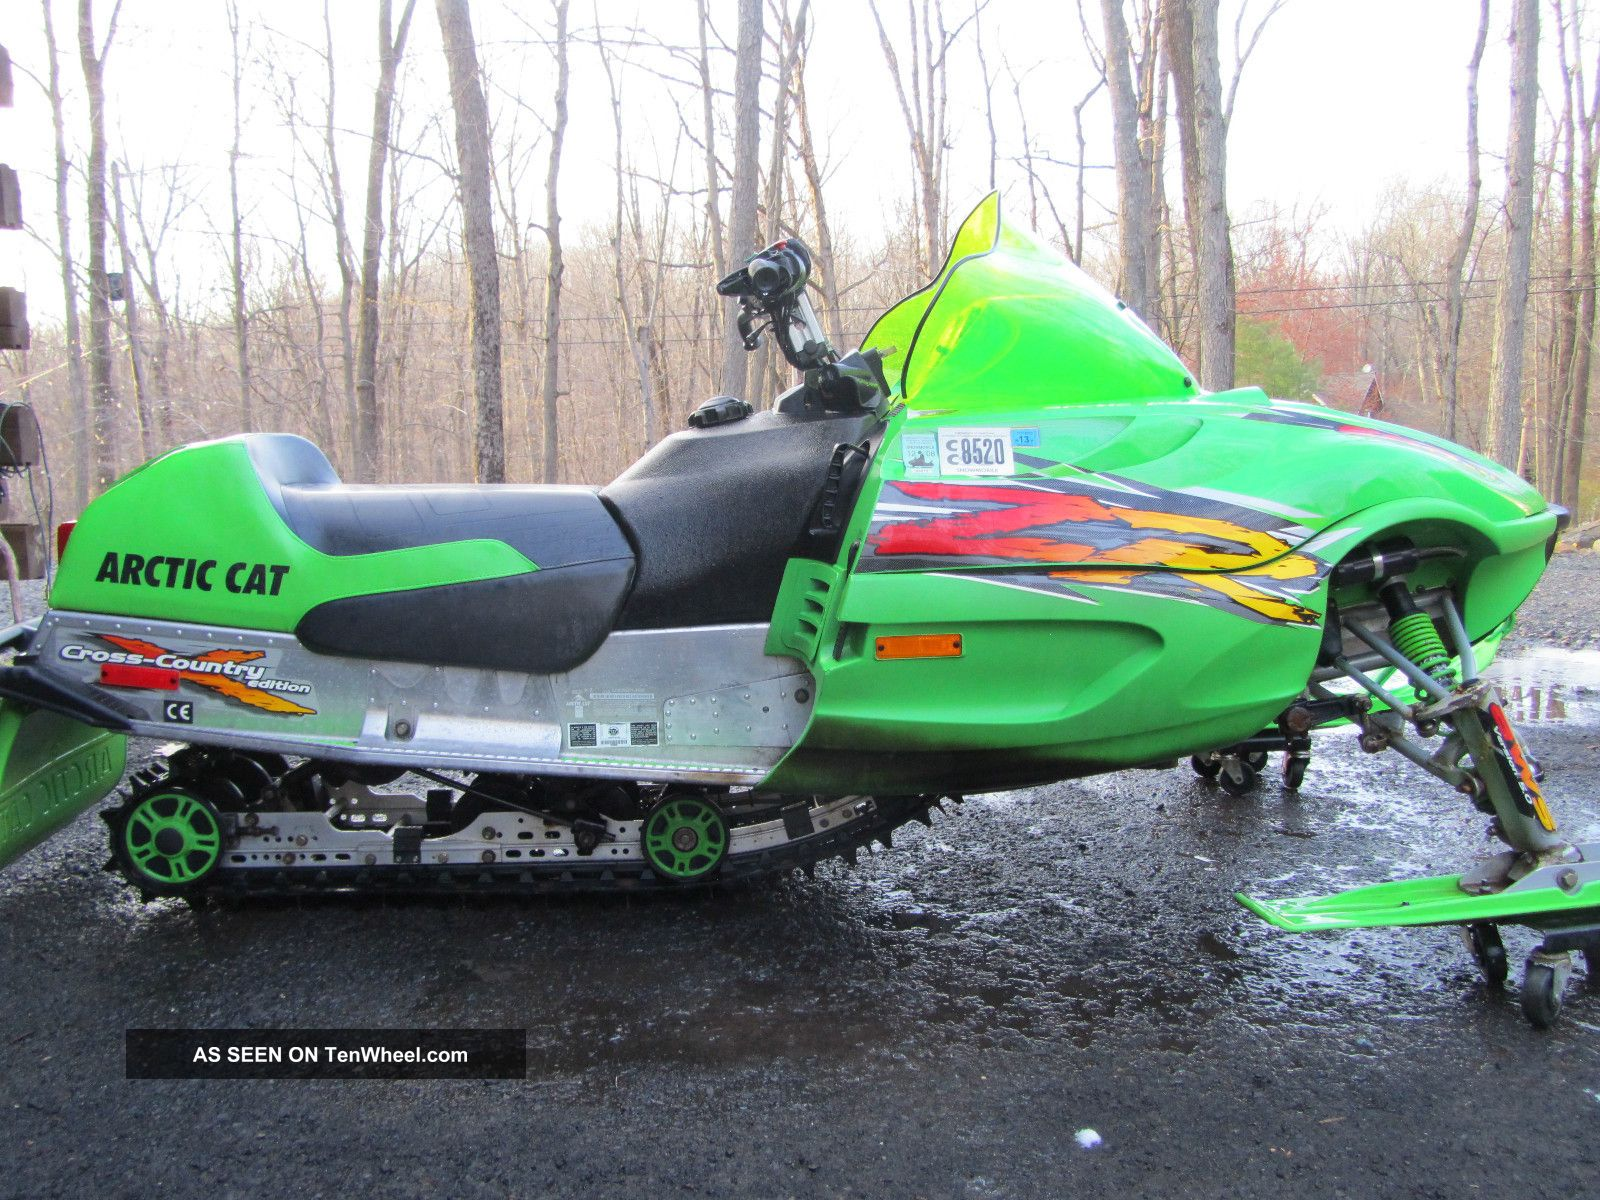 2002 Arctic Cat Zr600 Xc Arctic Cat photo